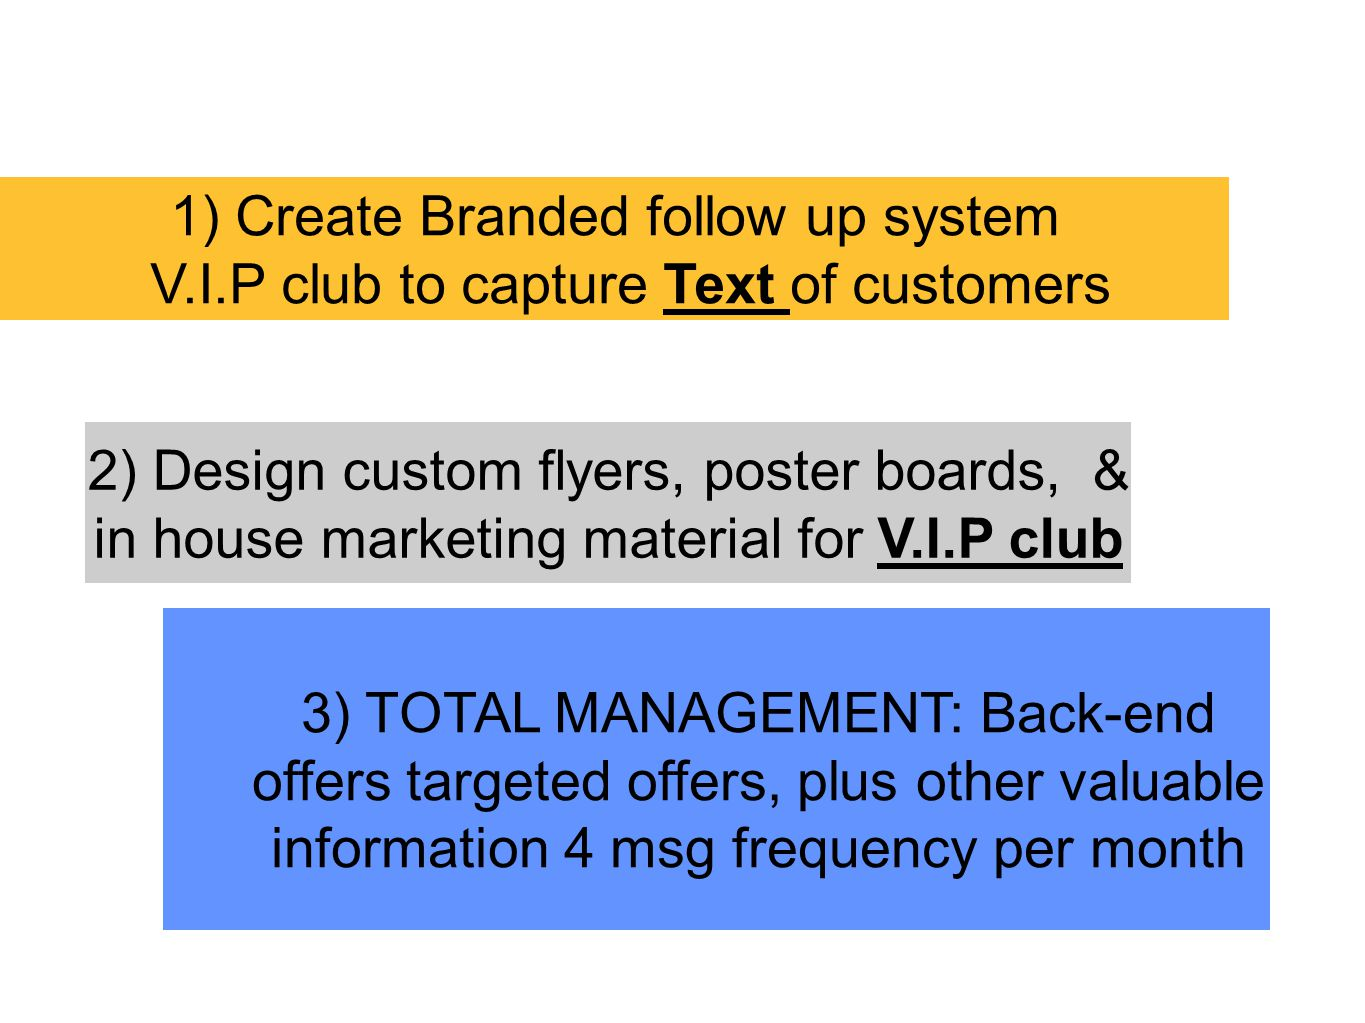 1) Create Branded follow up system V.I.P club to capture Text of customers 2) Design custom flyers, poster boards, & in house marketing material for V.I.P club 3) TOTAL MANAGEMENT: Back-end offers targeted offers, plus other valuable information 4 msg frequency per month